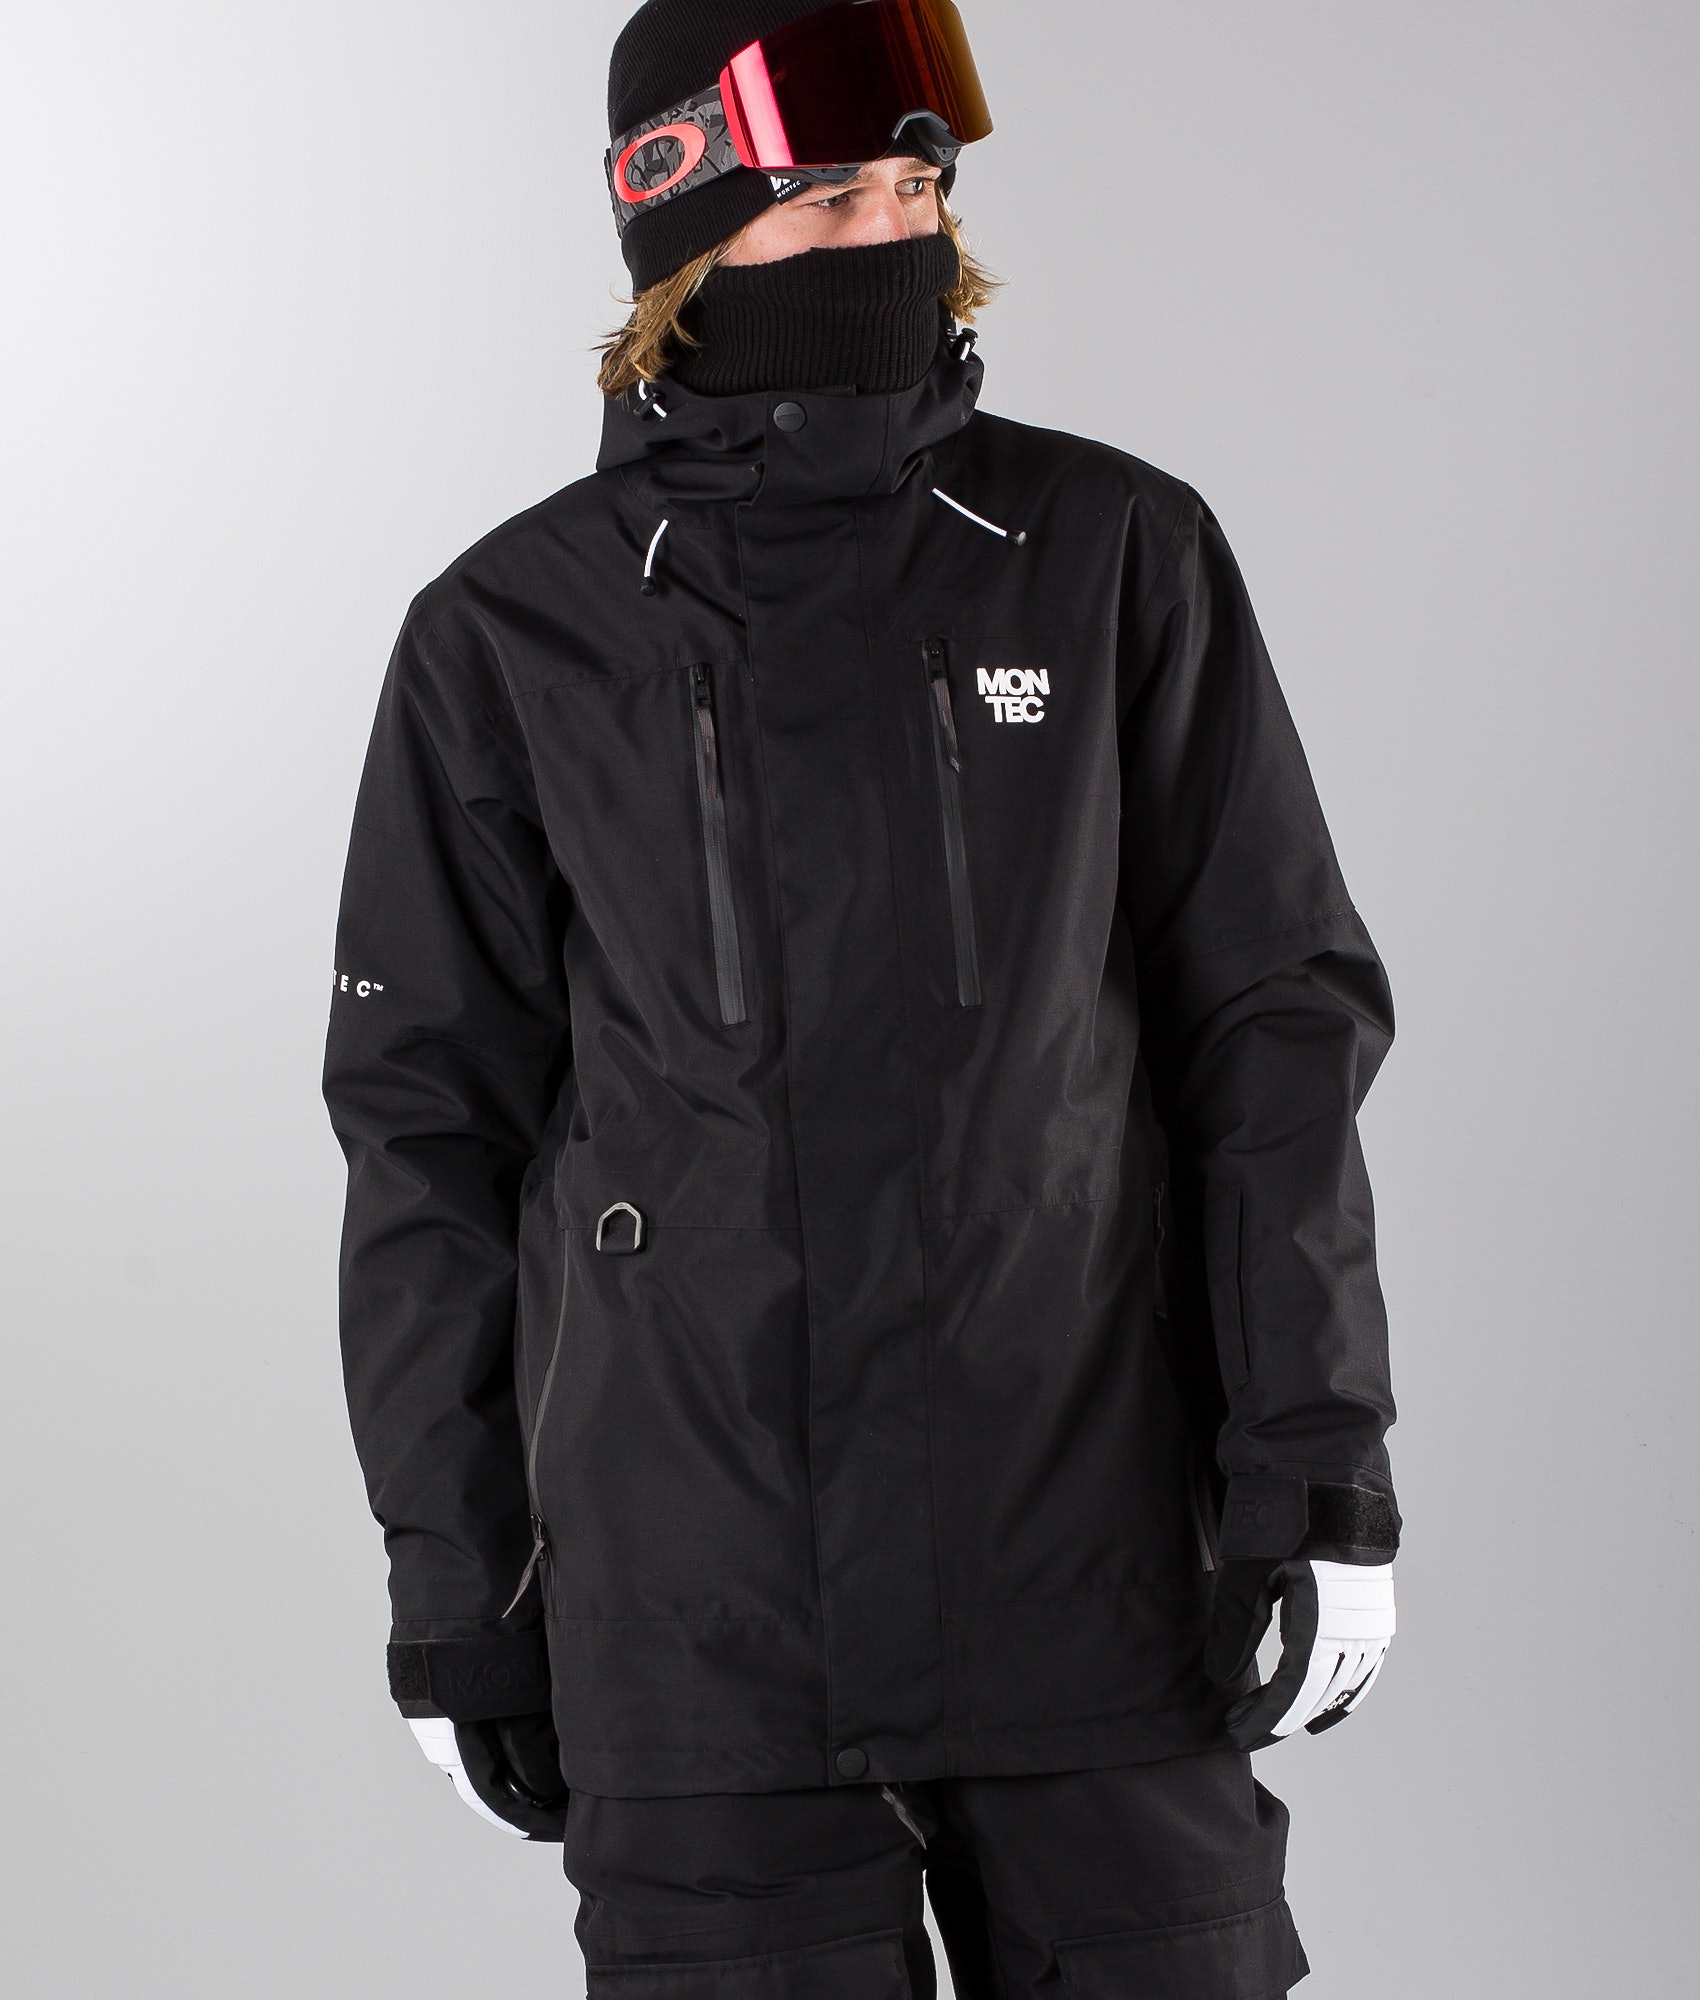 4bc29fc01490 Men's Ski Jackets | Fast & Free Delivery | RIDESTORE